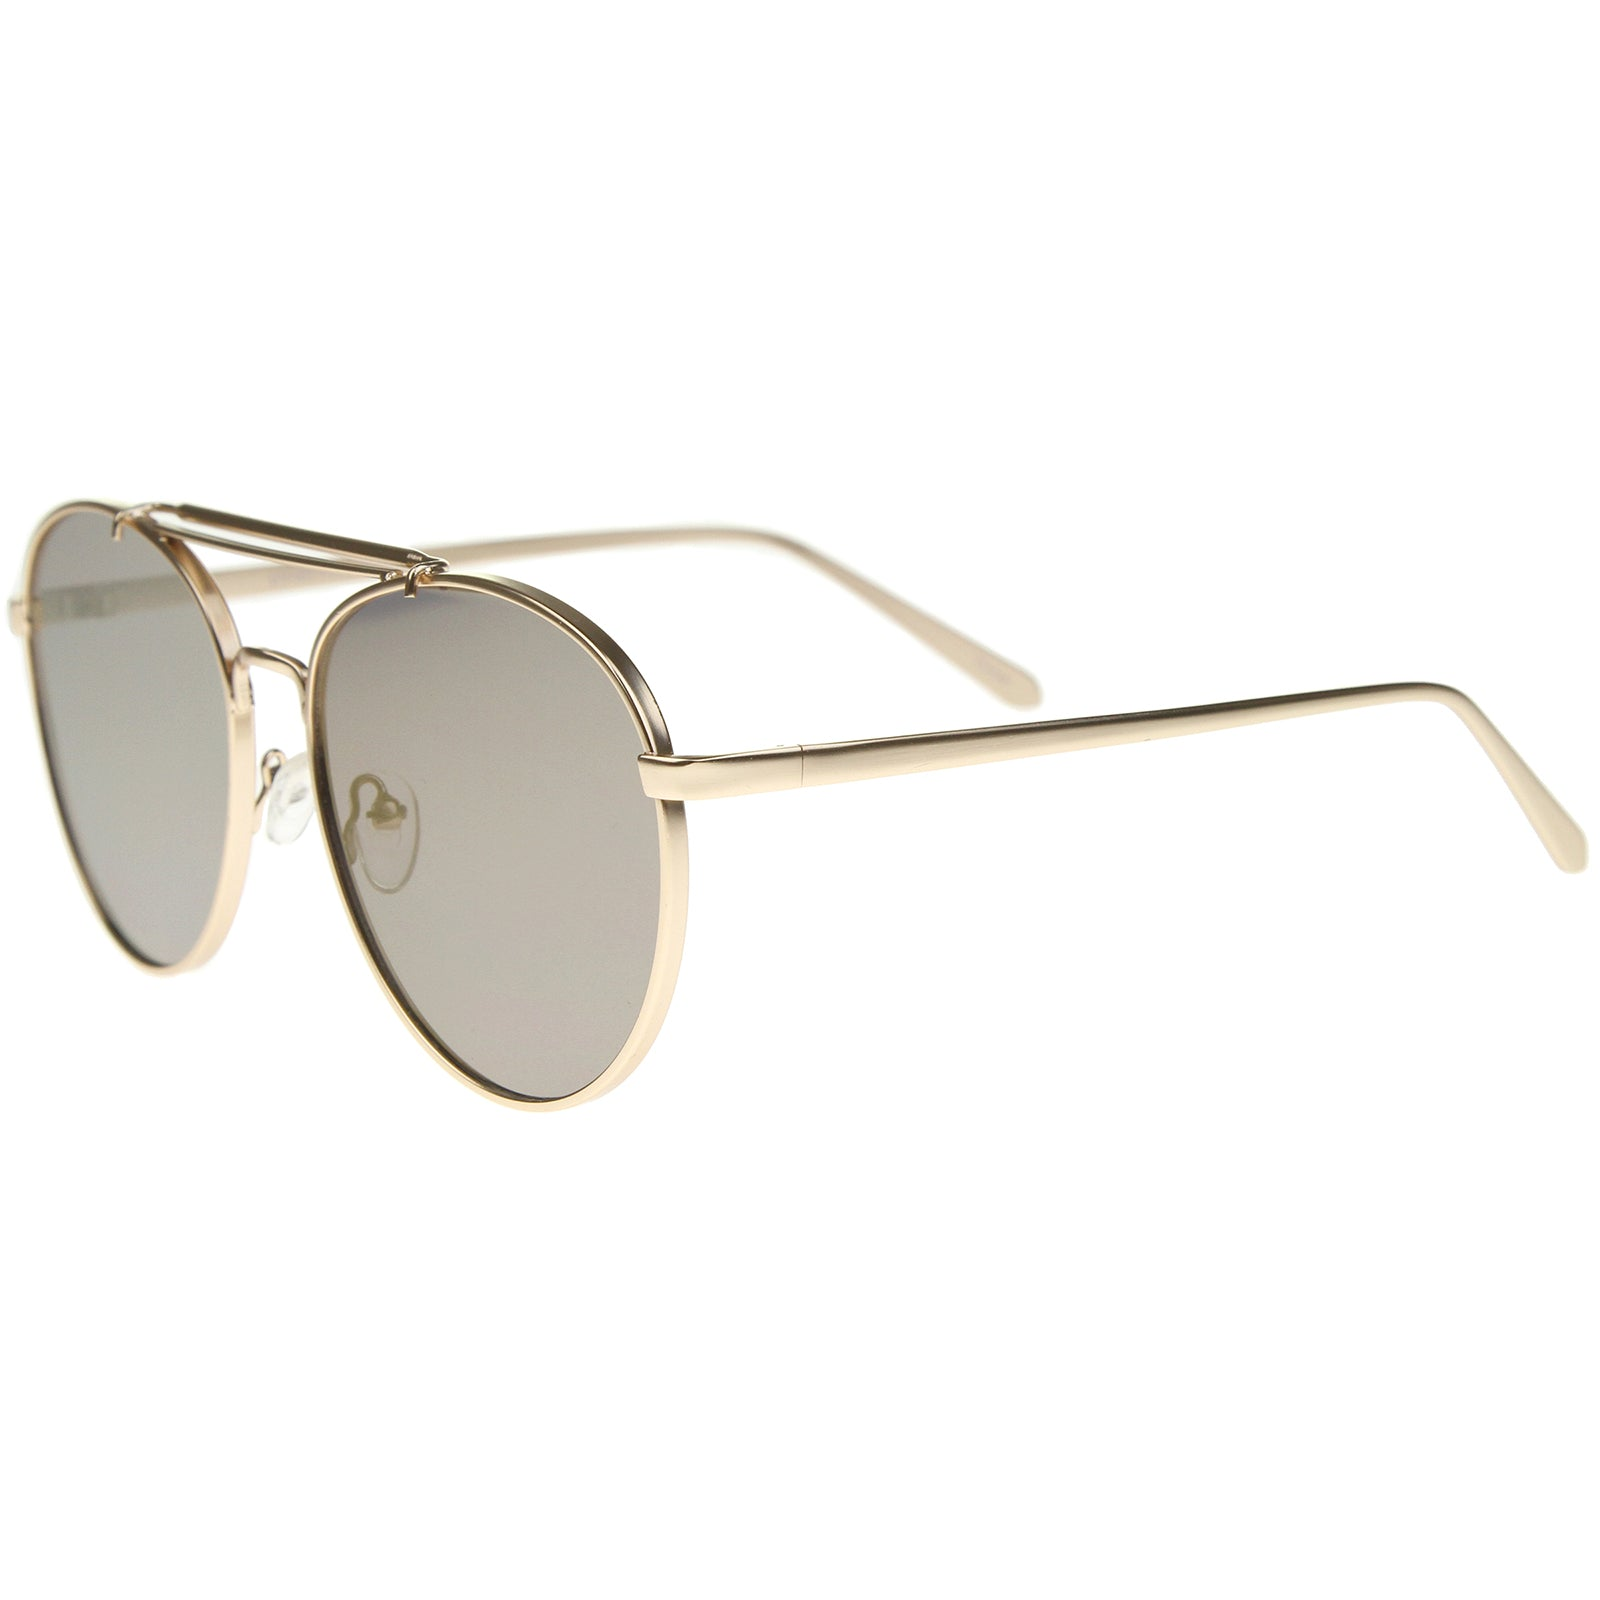 Large Metal Teardrop Double Bridge Mirrored Flat Lens Aviator Sunglasses 60mm - sunglass.la - 23